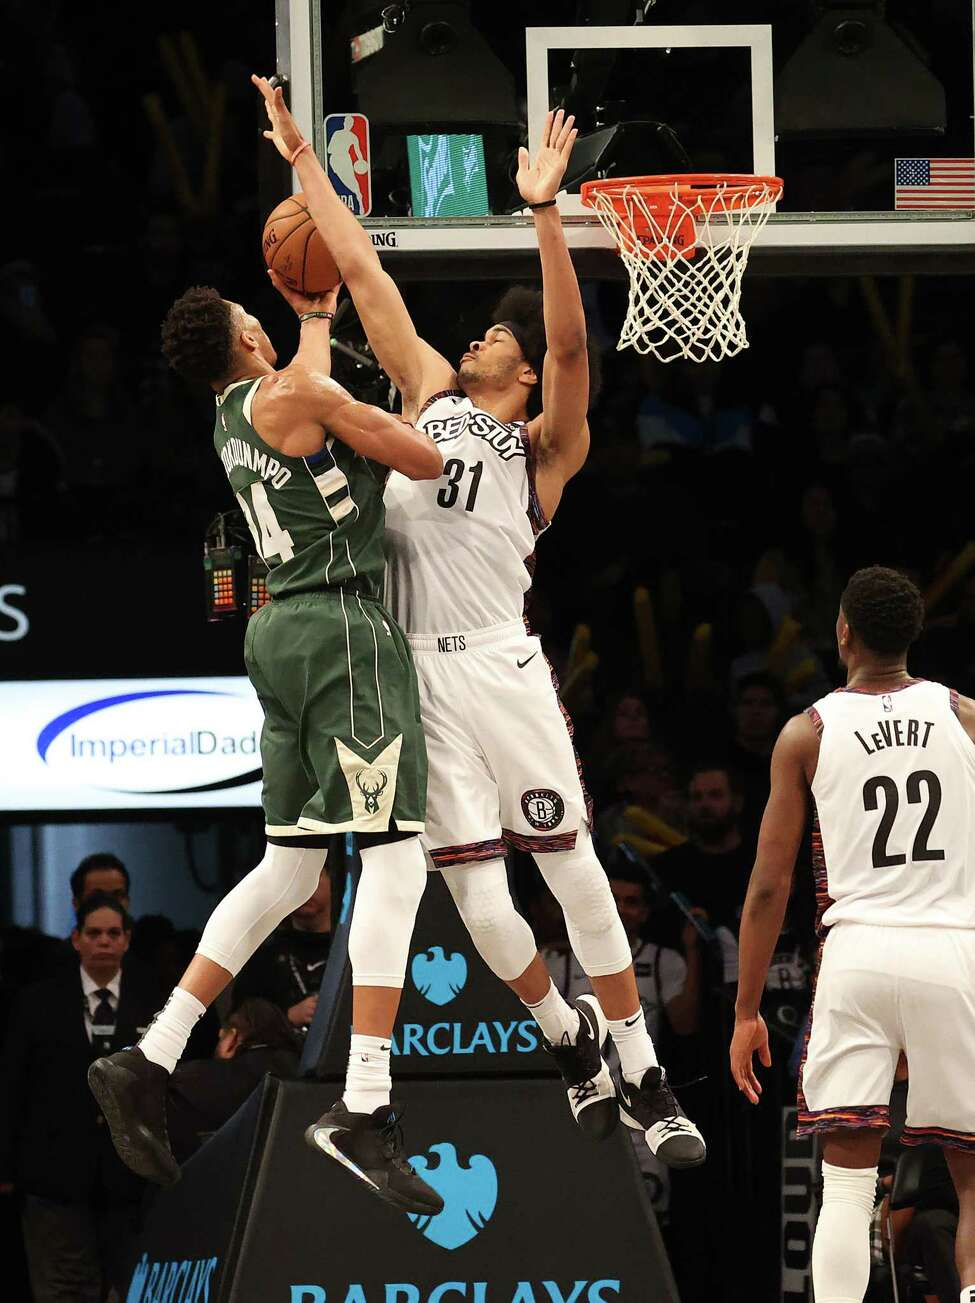 NEW YORK, NEW YORK - JANUARY 18: Giannis Antetokounmpo #34 of the Milwaukee Bucks shoots against Jarrett Allen #31 of the Brooklyn Nets during their game at Barclays Center on January 18, 2020 in New York City. NOTE TO USER: User expressly acknowledges and agrees that, by downloading and/or using this photograph, user is consenting to the terms and conditions of the Getty Images License Agreement. (Photo by Al Bello/Getty Images)